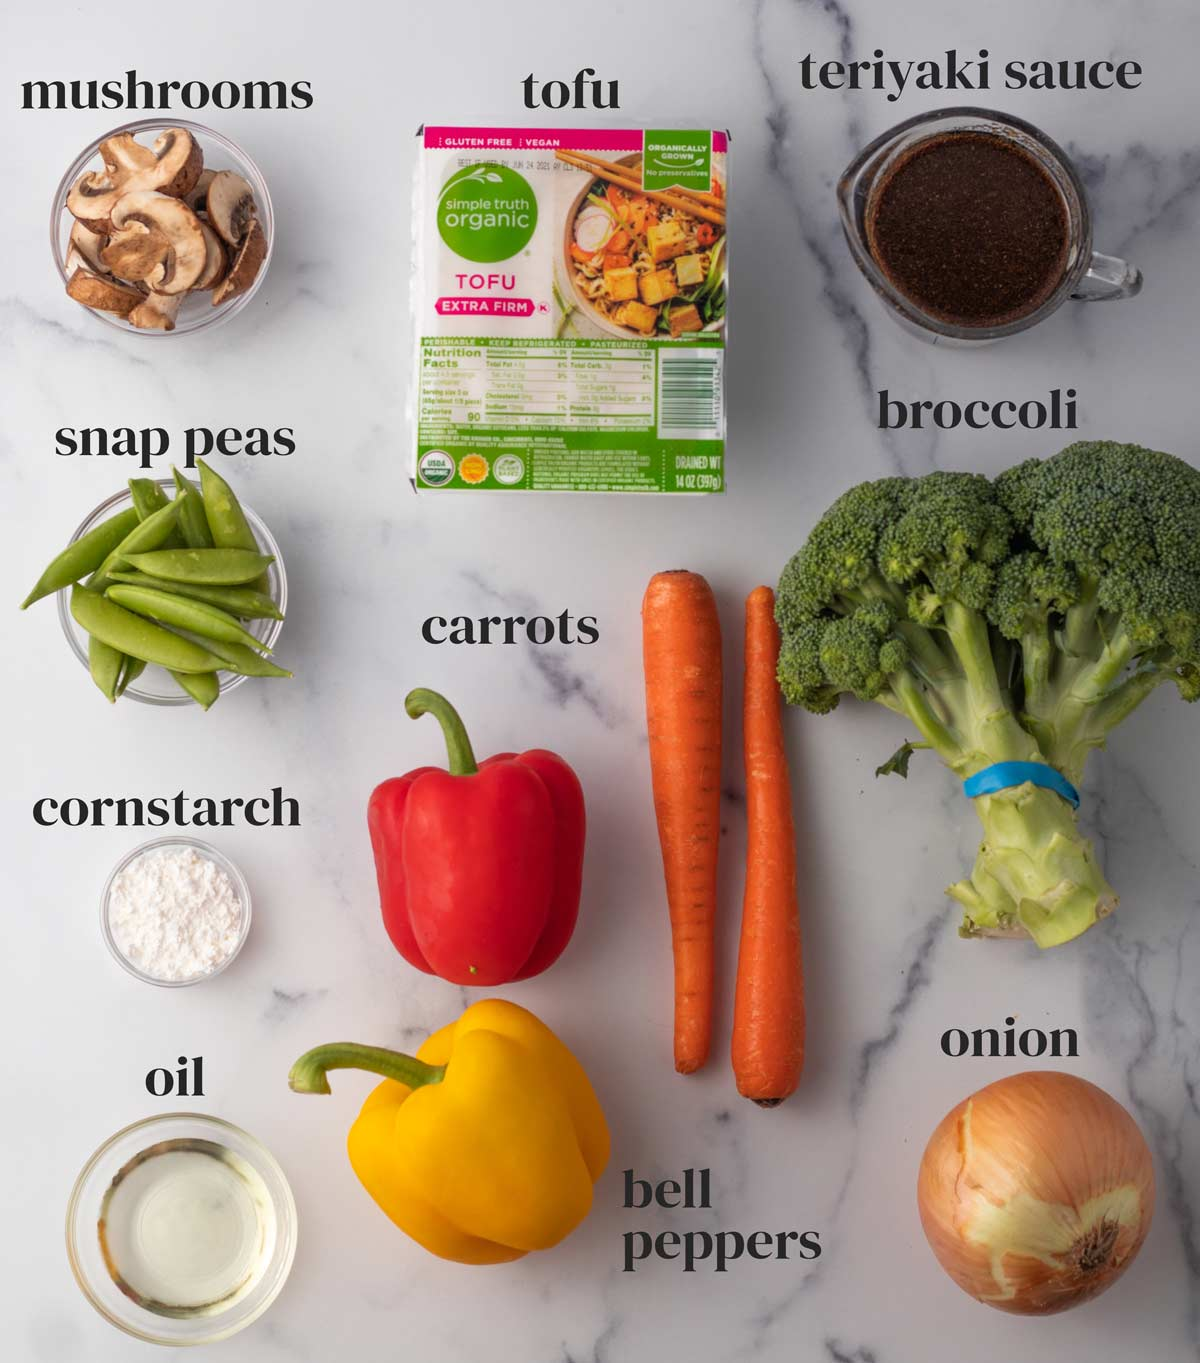 overhead of all ingredients to make teriyaki tofu stir fry with extra-firm tofu, broccoli, carrots, oil, peas, mushrooms and more vegetables